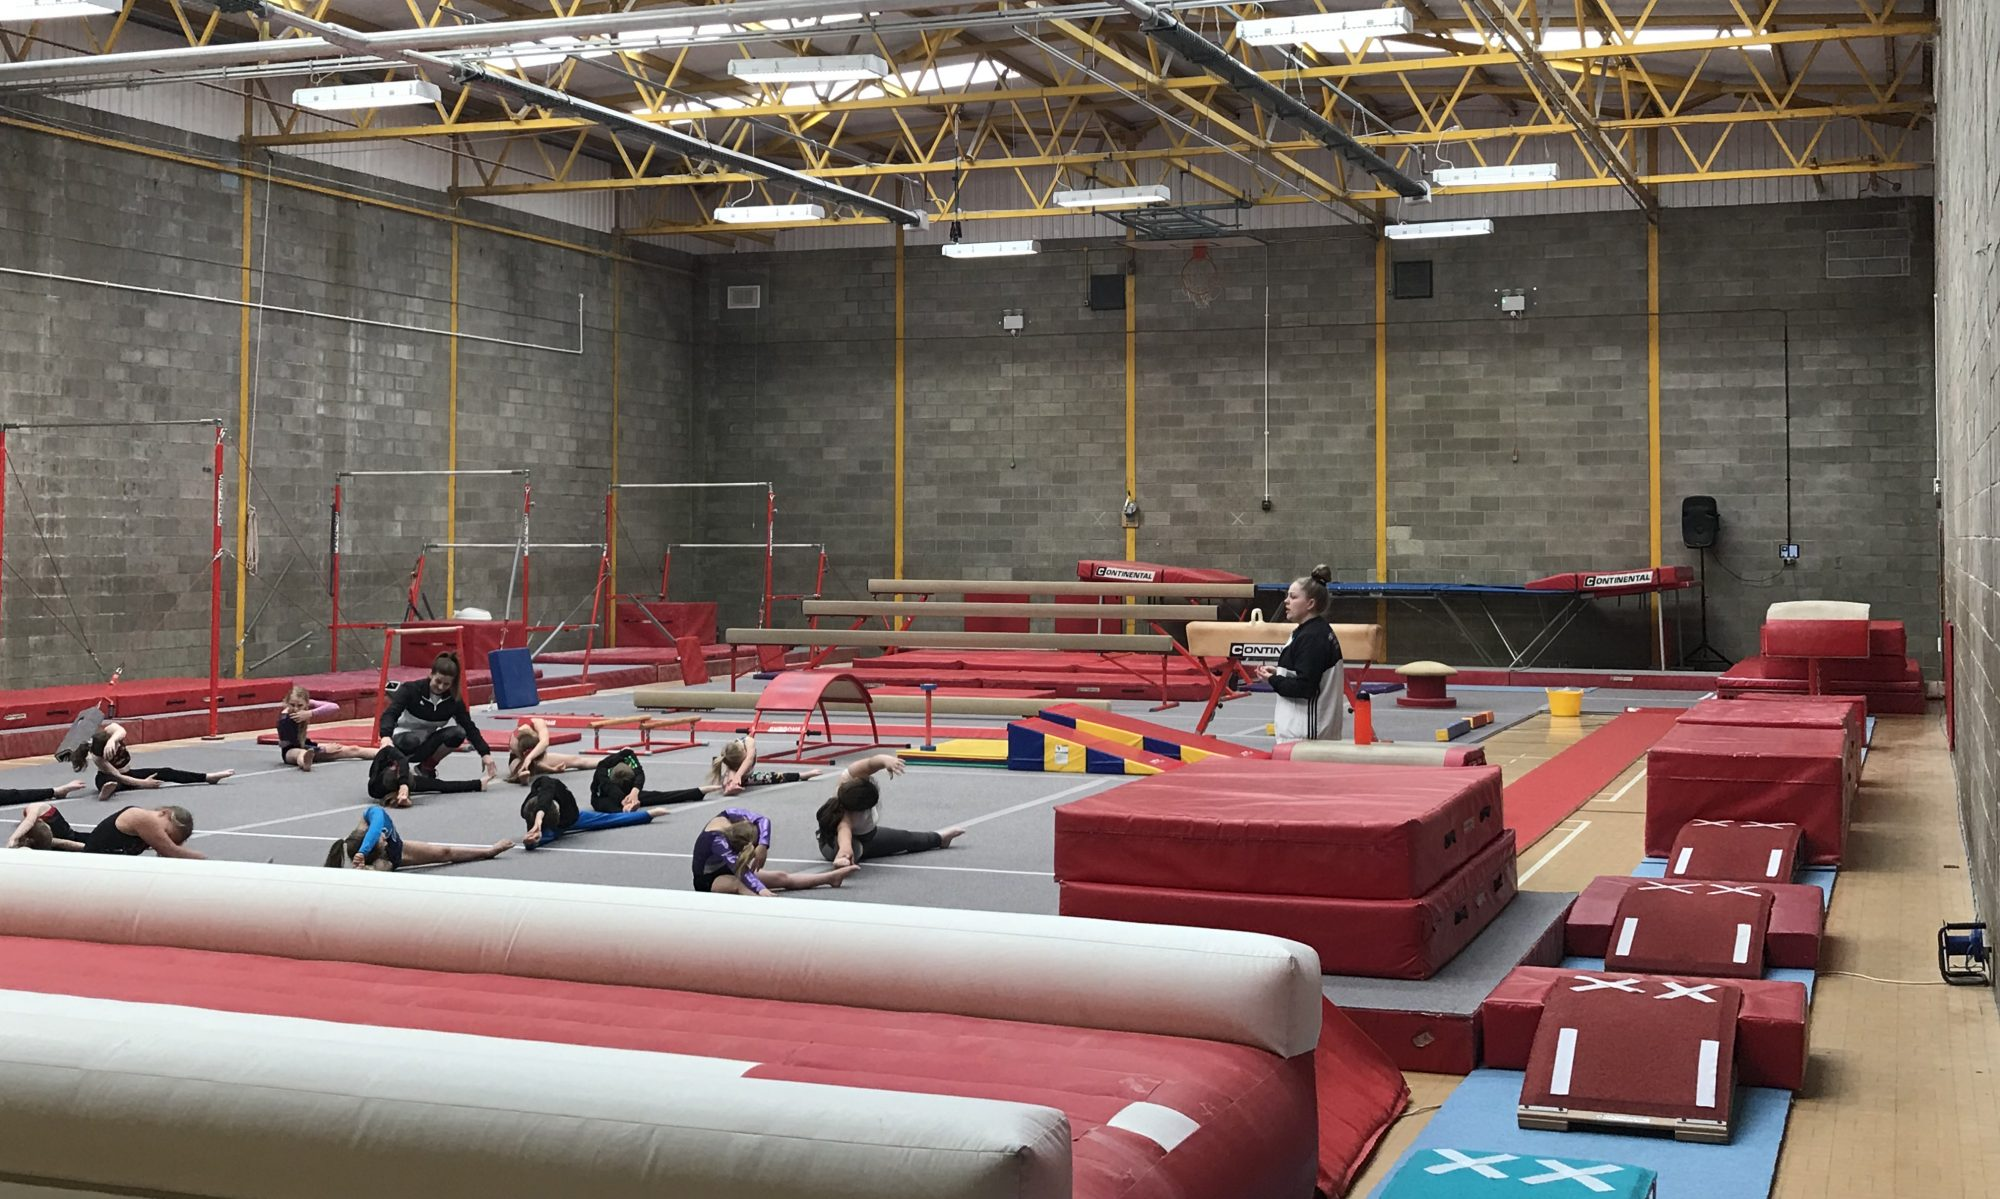 HIGH GREEN GYMNASTICS ACADEMY